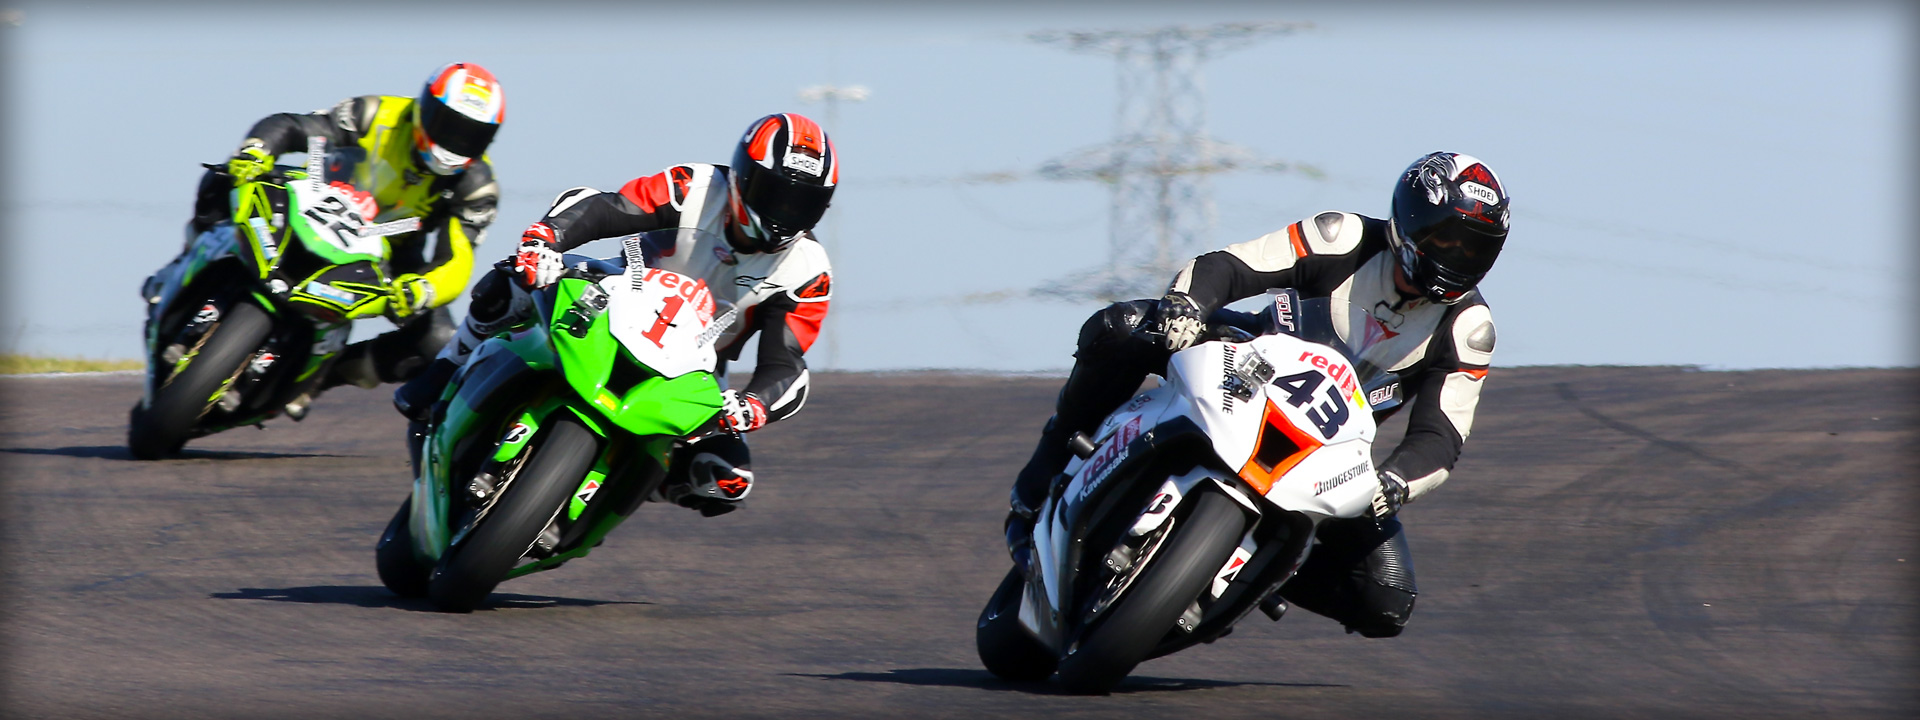 Race Report - Red Square Kawasaki ZX-10R Masters Cup - Round 2 - 21 March 2017 - Zwartkops Raceway